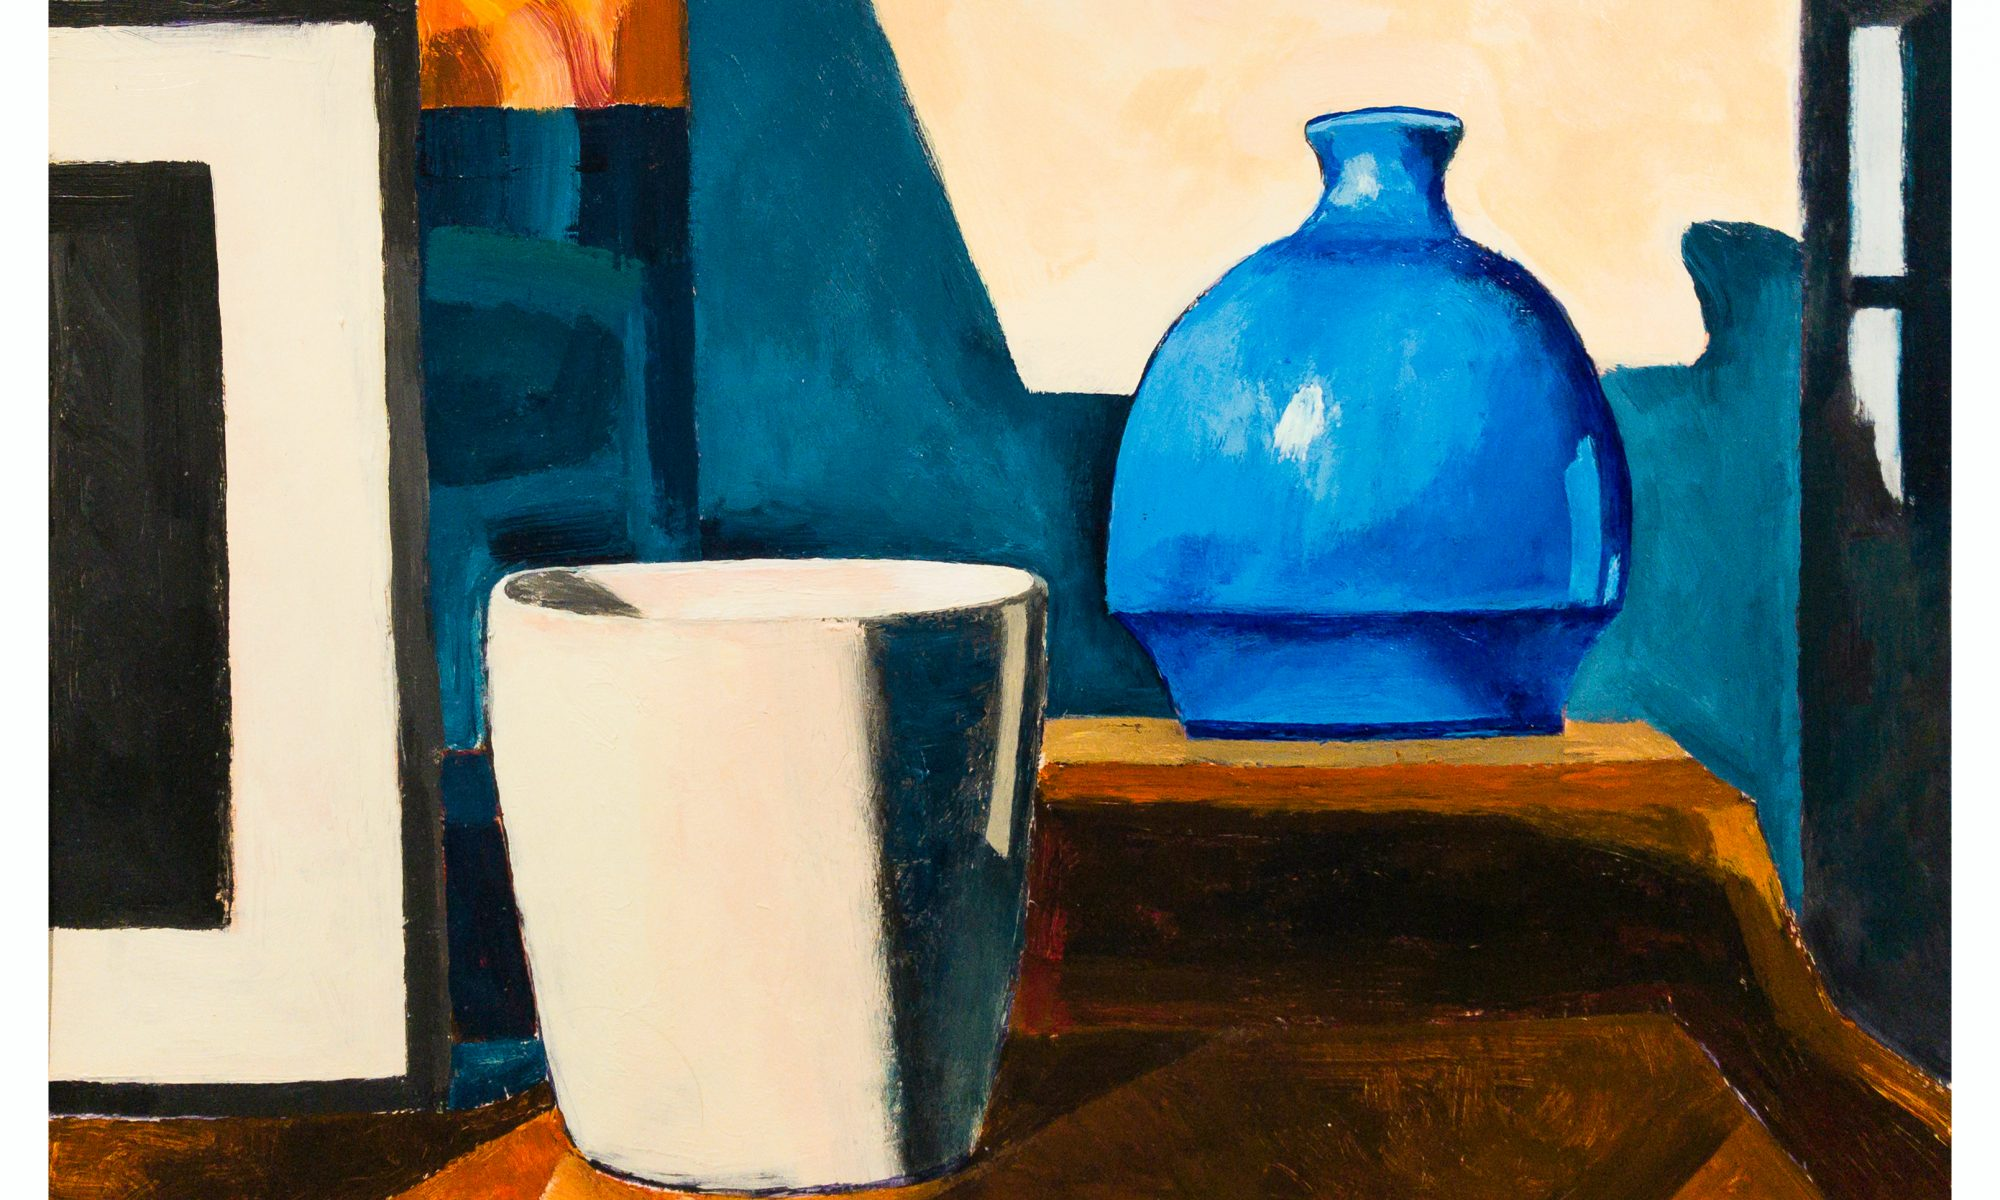 Still Life with Blue Bottle, 8/20